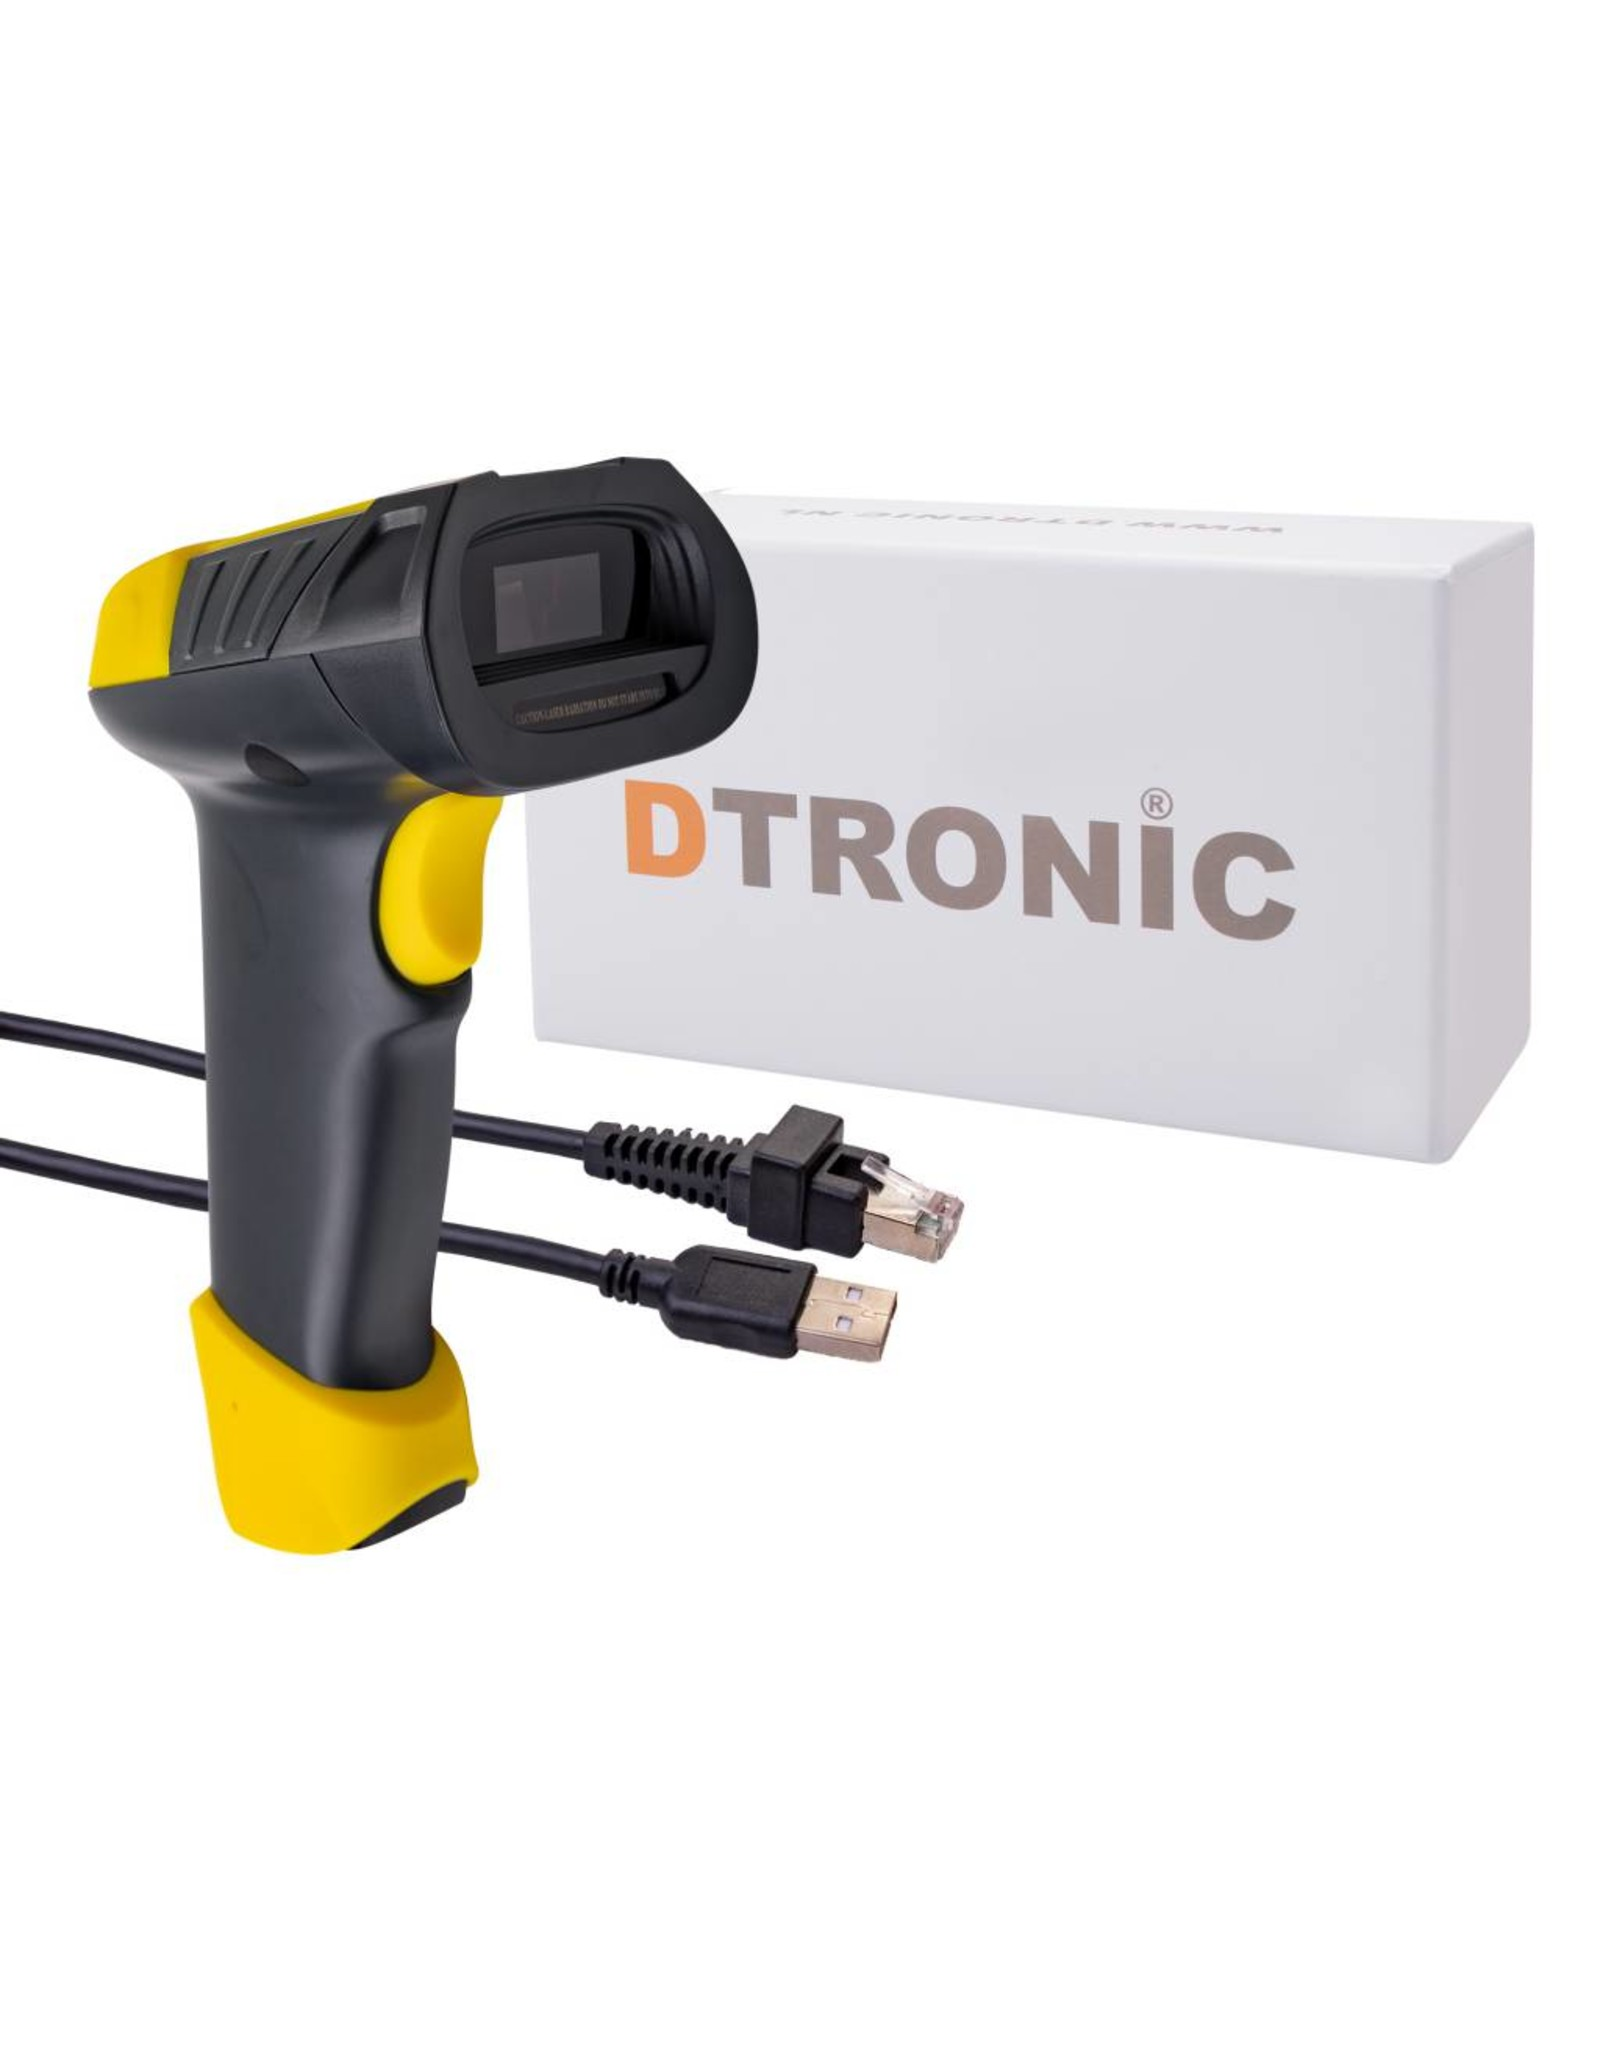 DTRONIC DTRONIC - A8